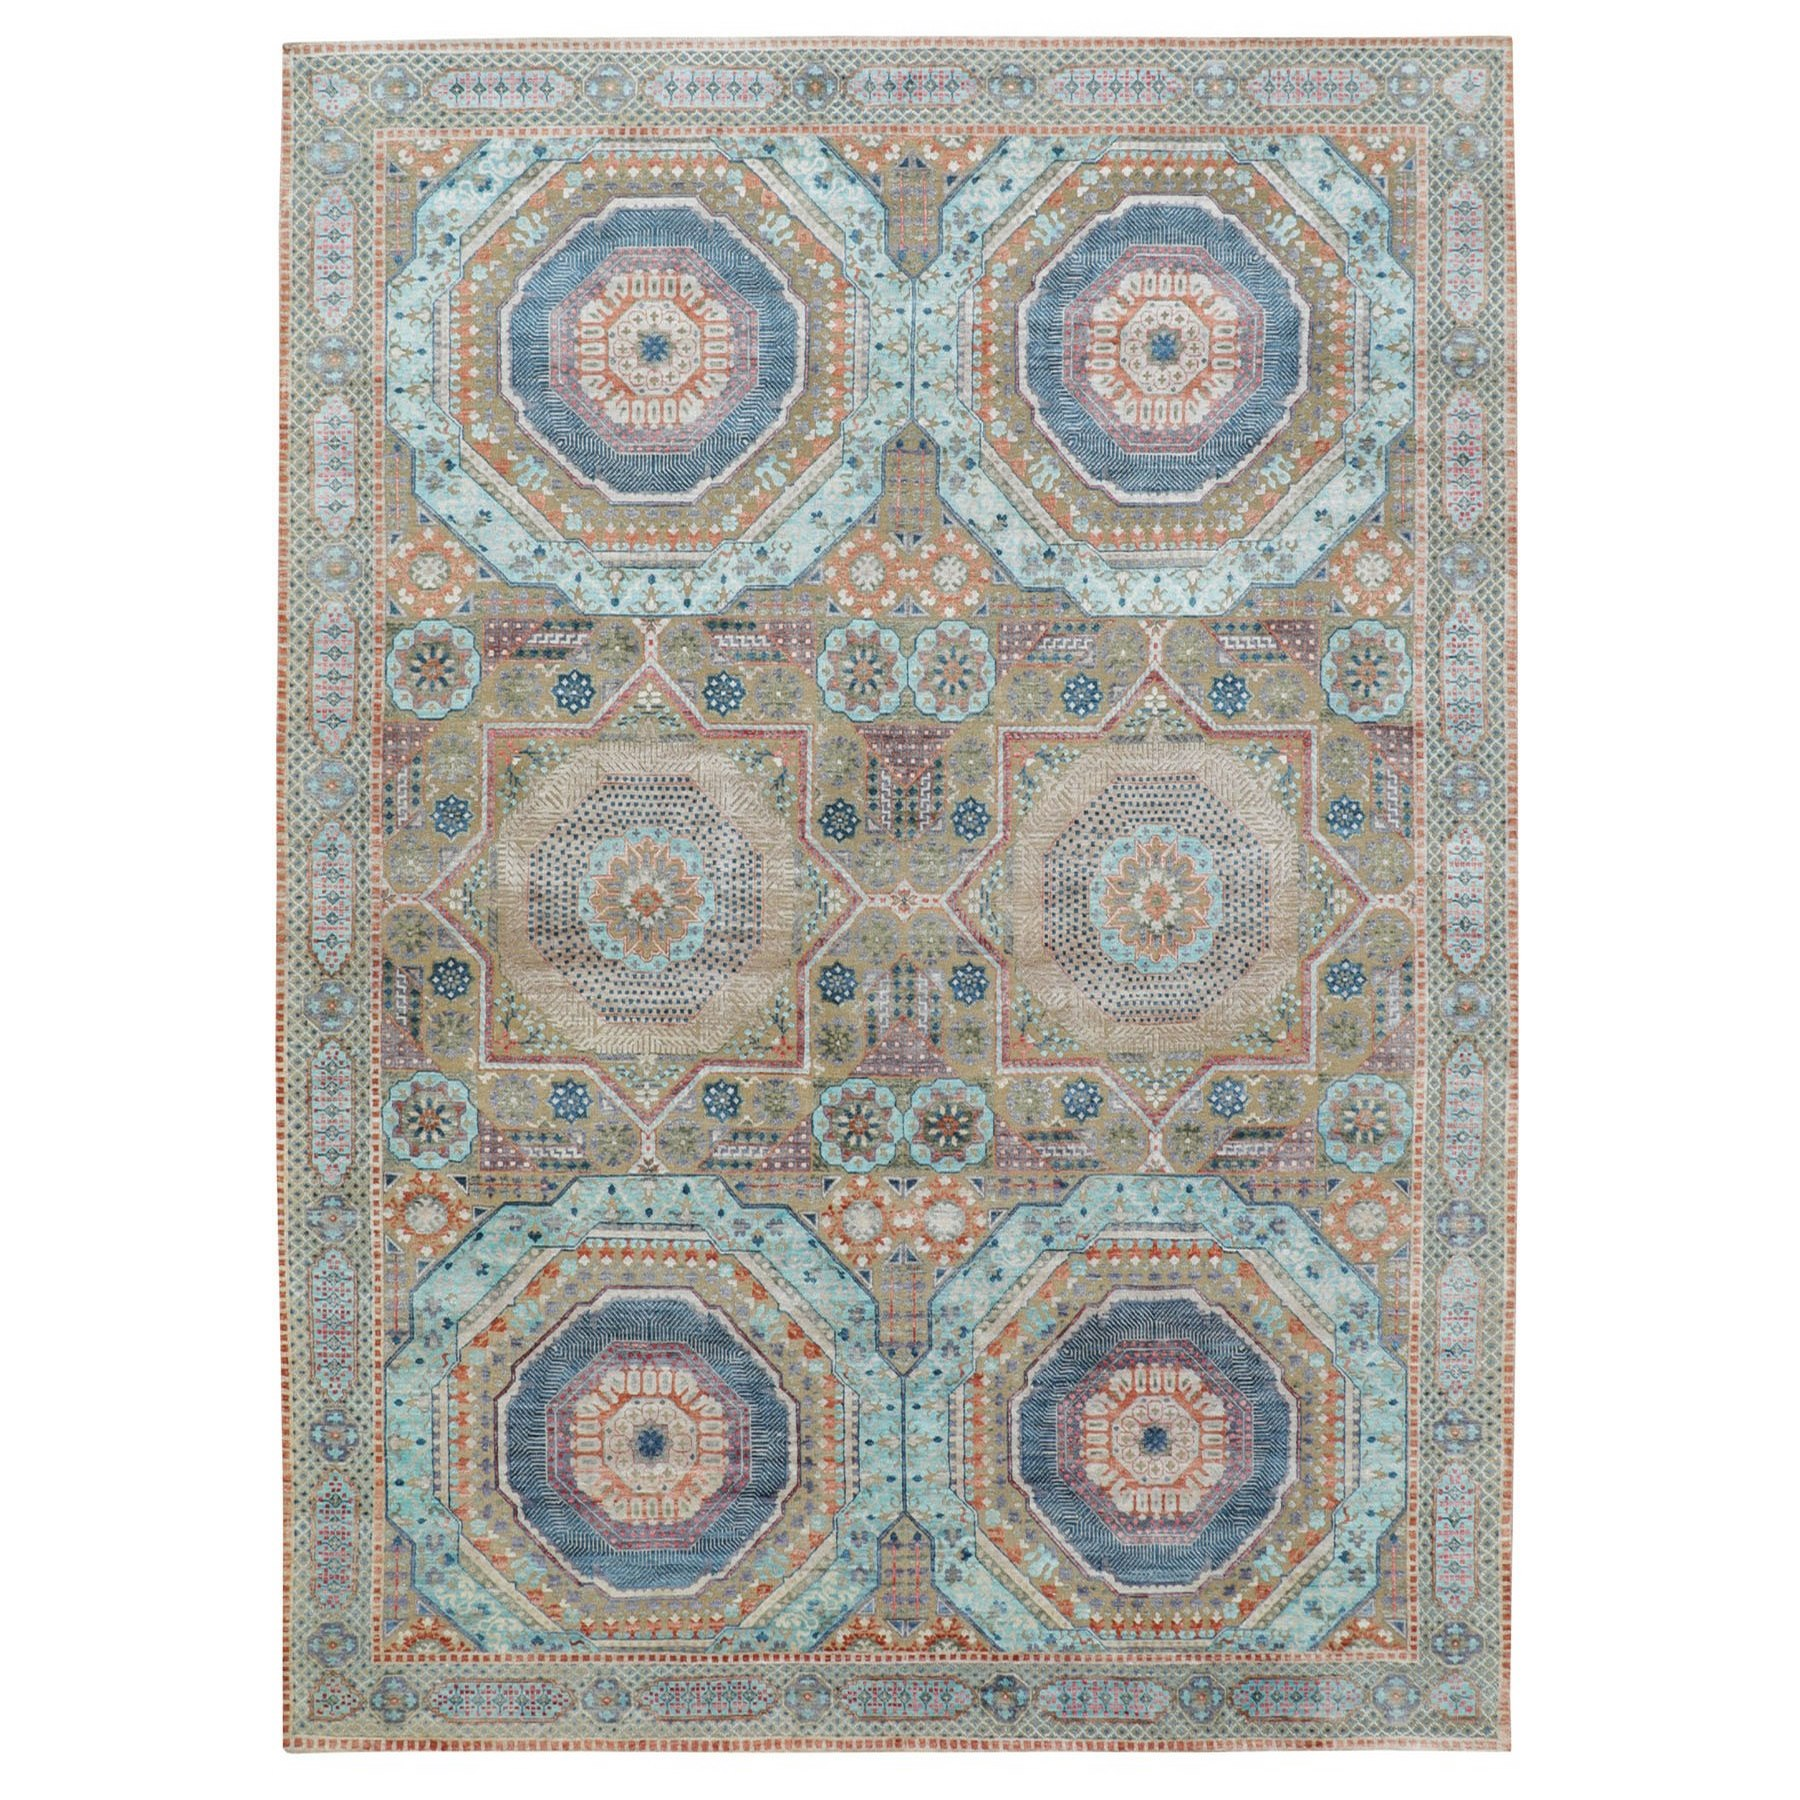 "8'8""x12' Silk With Textured Wool Mamluk Design Hand knotted Oriental Rug"